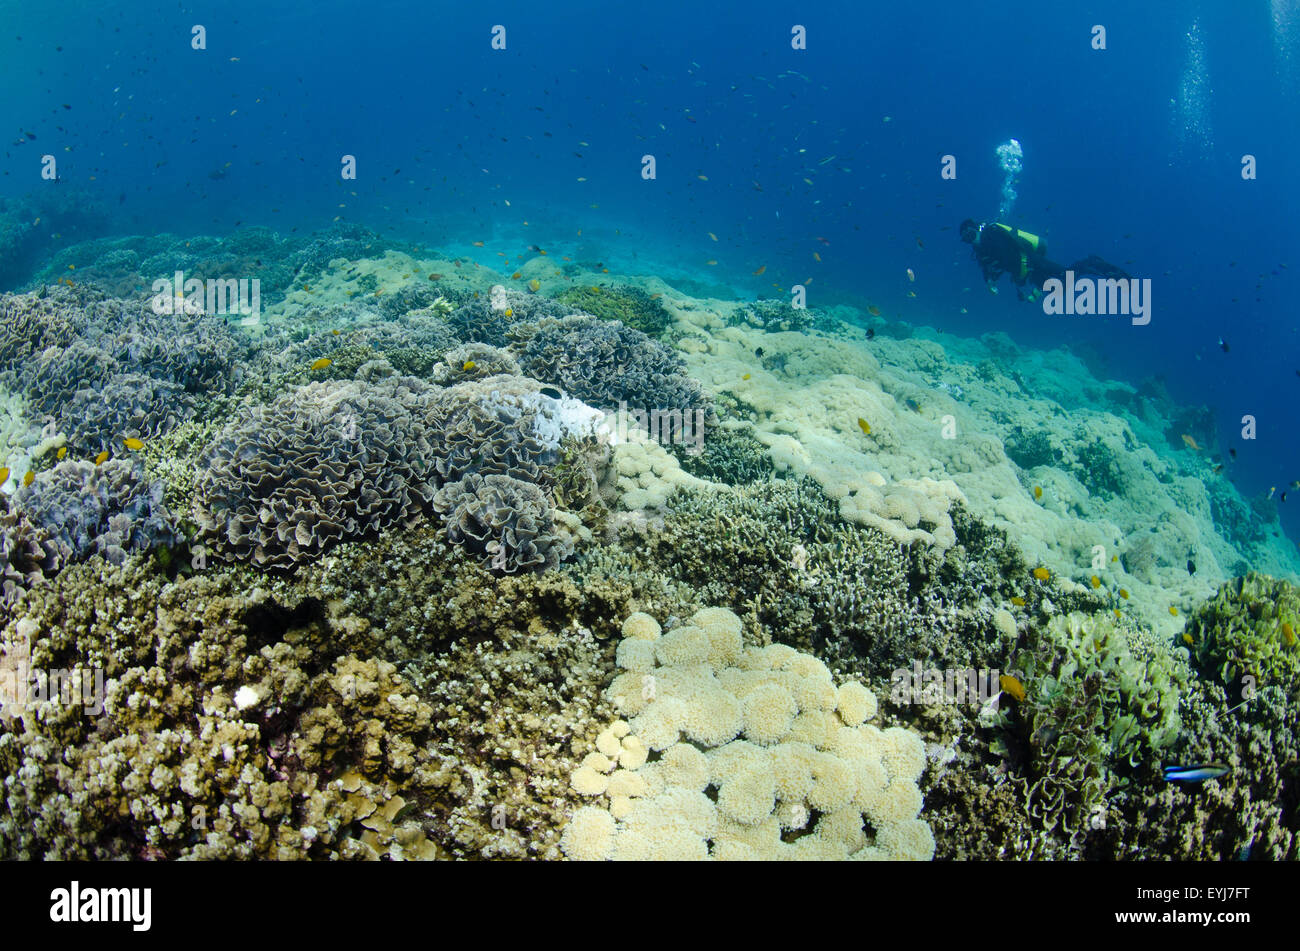 A diver swims over a coral garden in Menjangan Island, West Bali National Park, Indonesia, Pacific Ocean - Stock Image